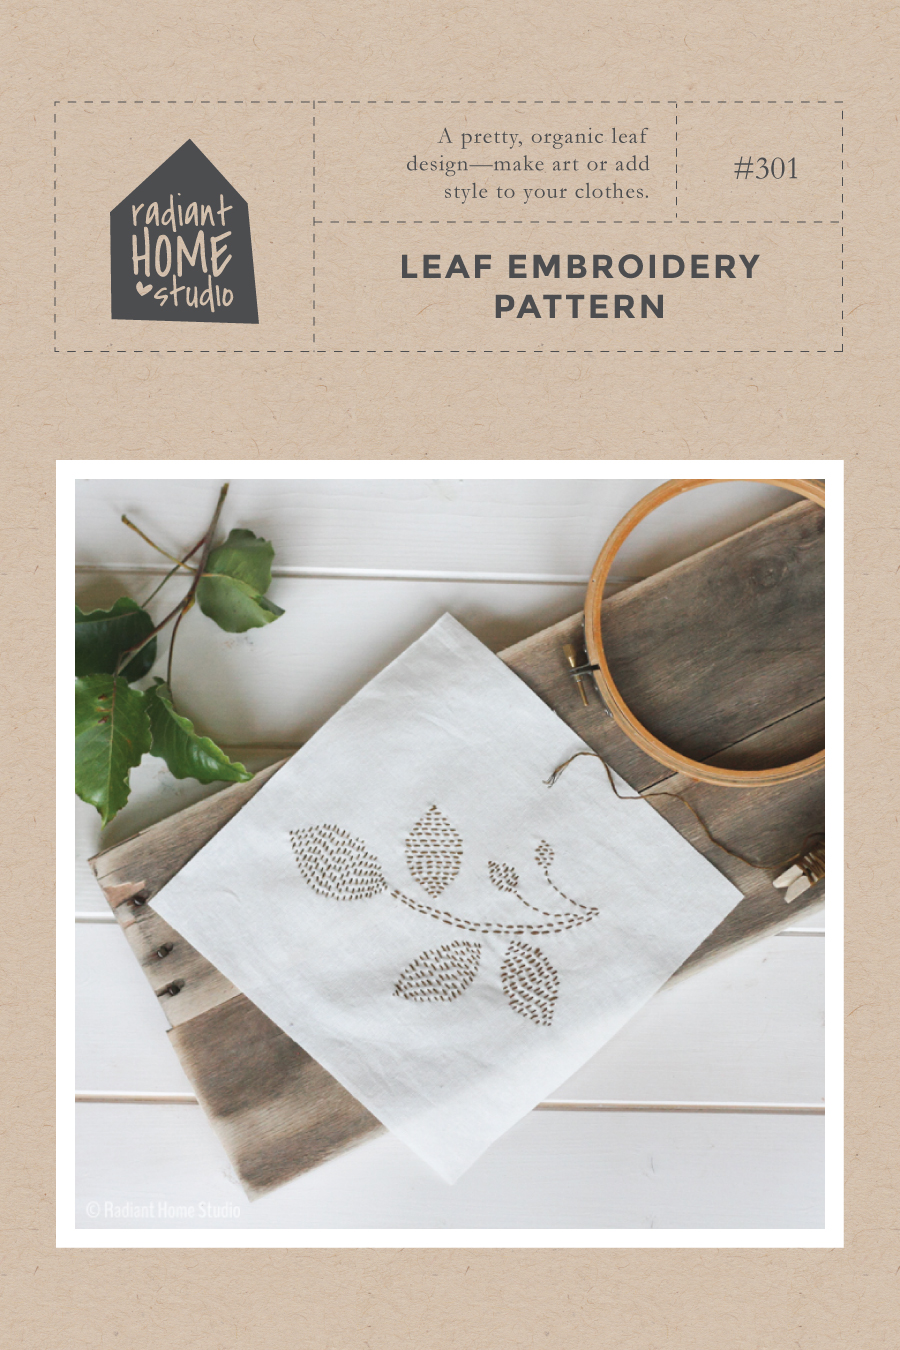 Leaf Embroidery Pattern | Radiant Home Studio